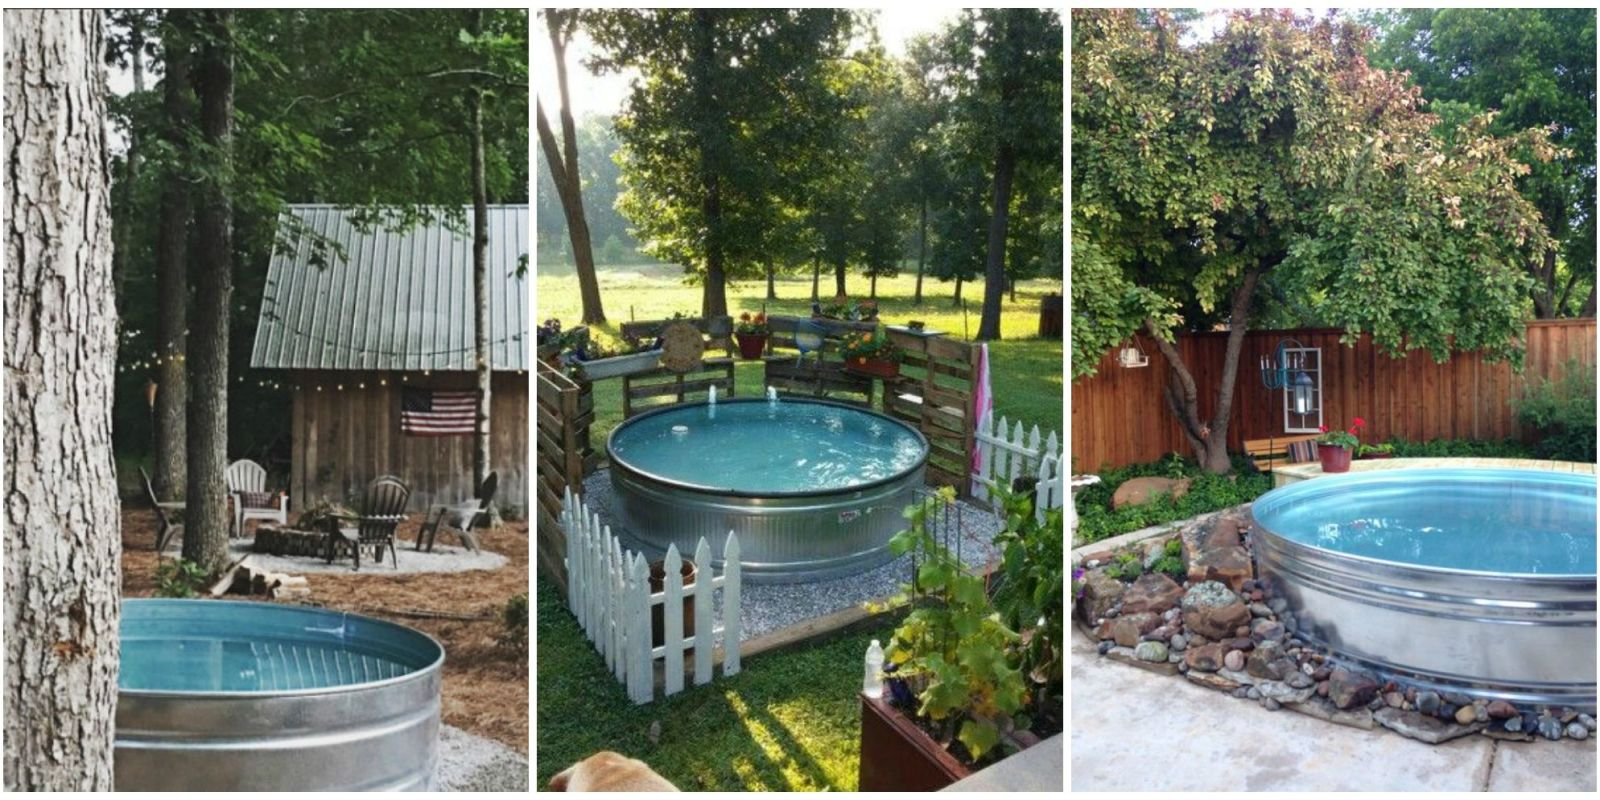 Stock tank swimming pool ideas how to make a pool from a for Uses for old swimming pools